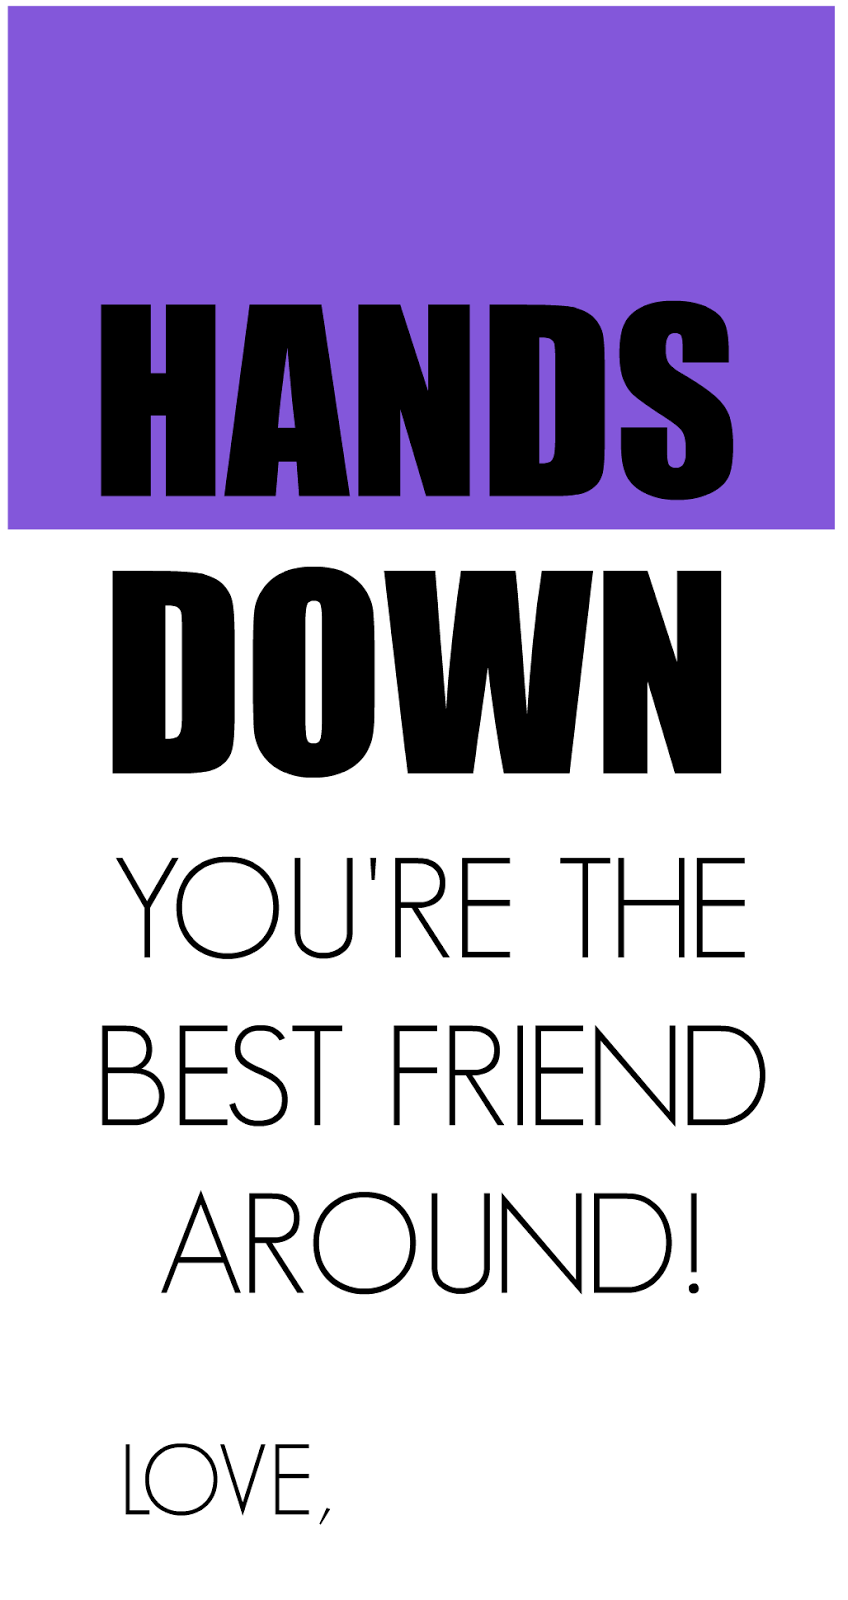 graphic about Hands Down You're the Best Printable named 4 Uncomplicated Do-it-yourself Xmas Presents - The Stylish Chick